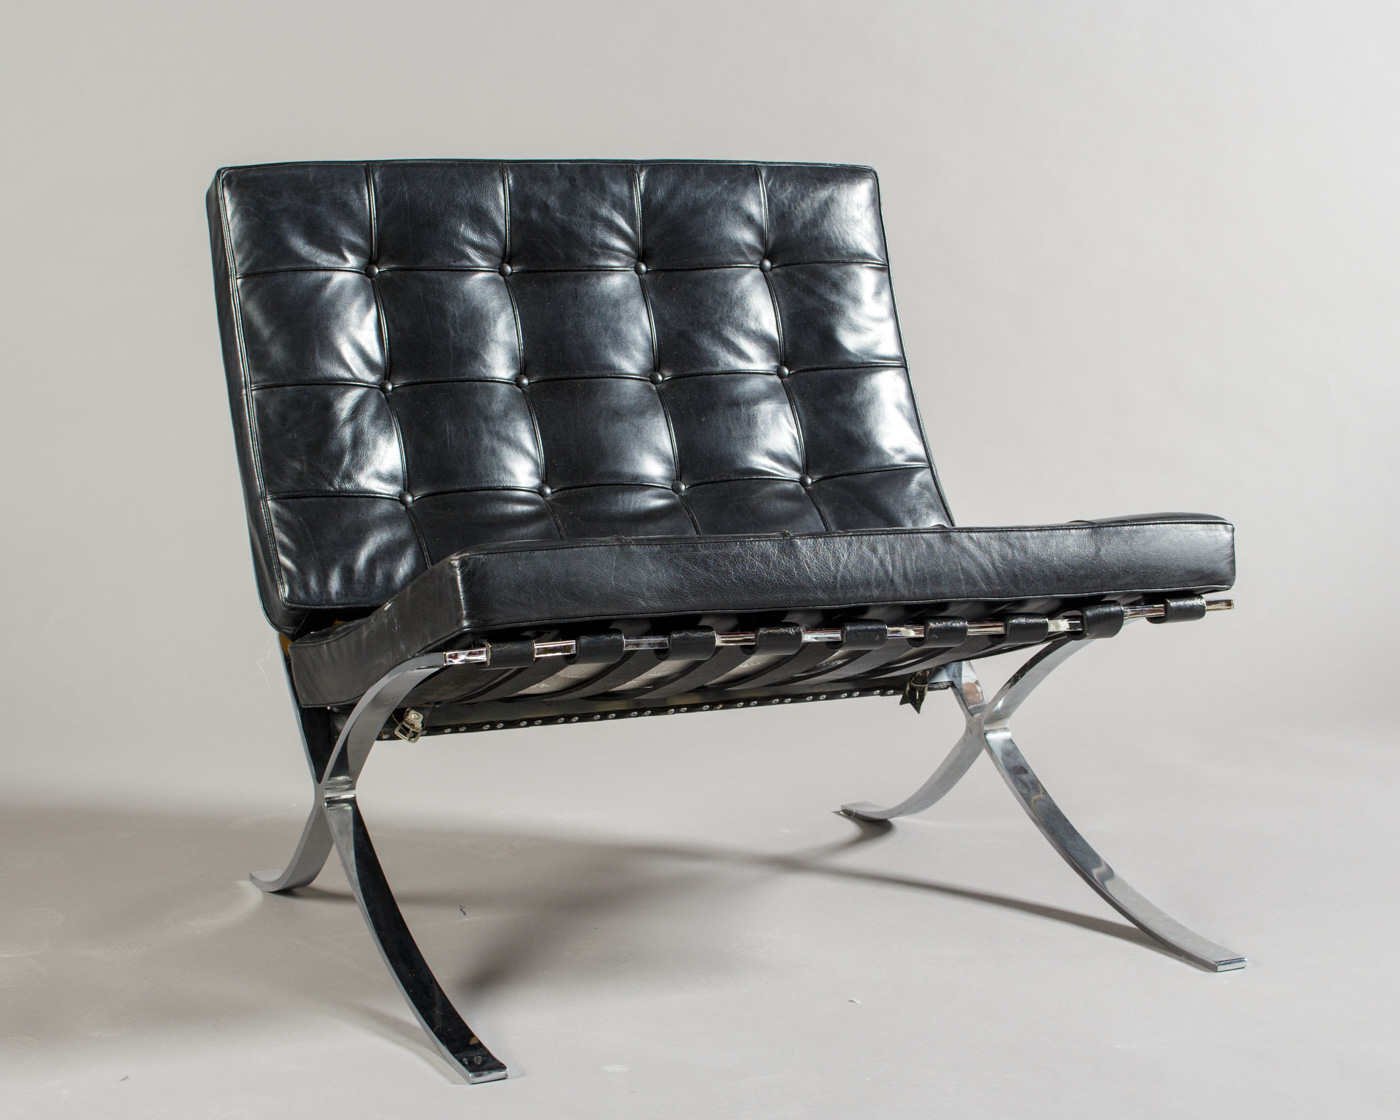 Wunderbar Ludwig Mies Van Der Rohe, A Lounge Chair, Model Barcelona By Knoll  International | Lauritz.com